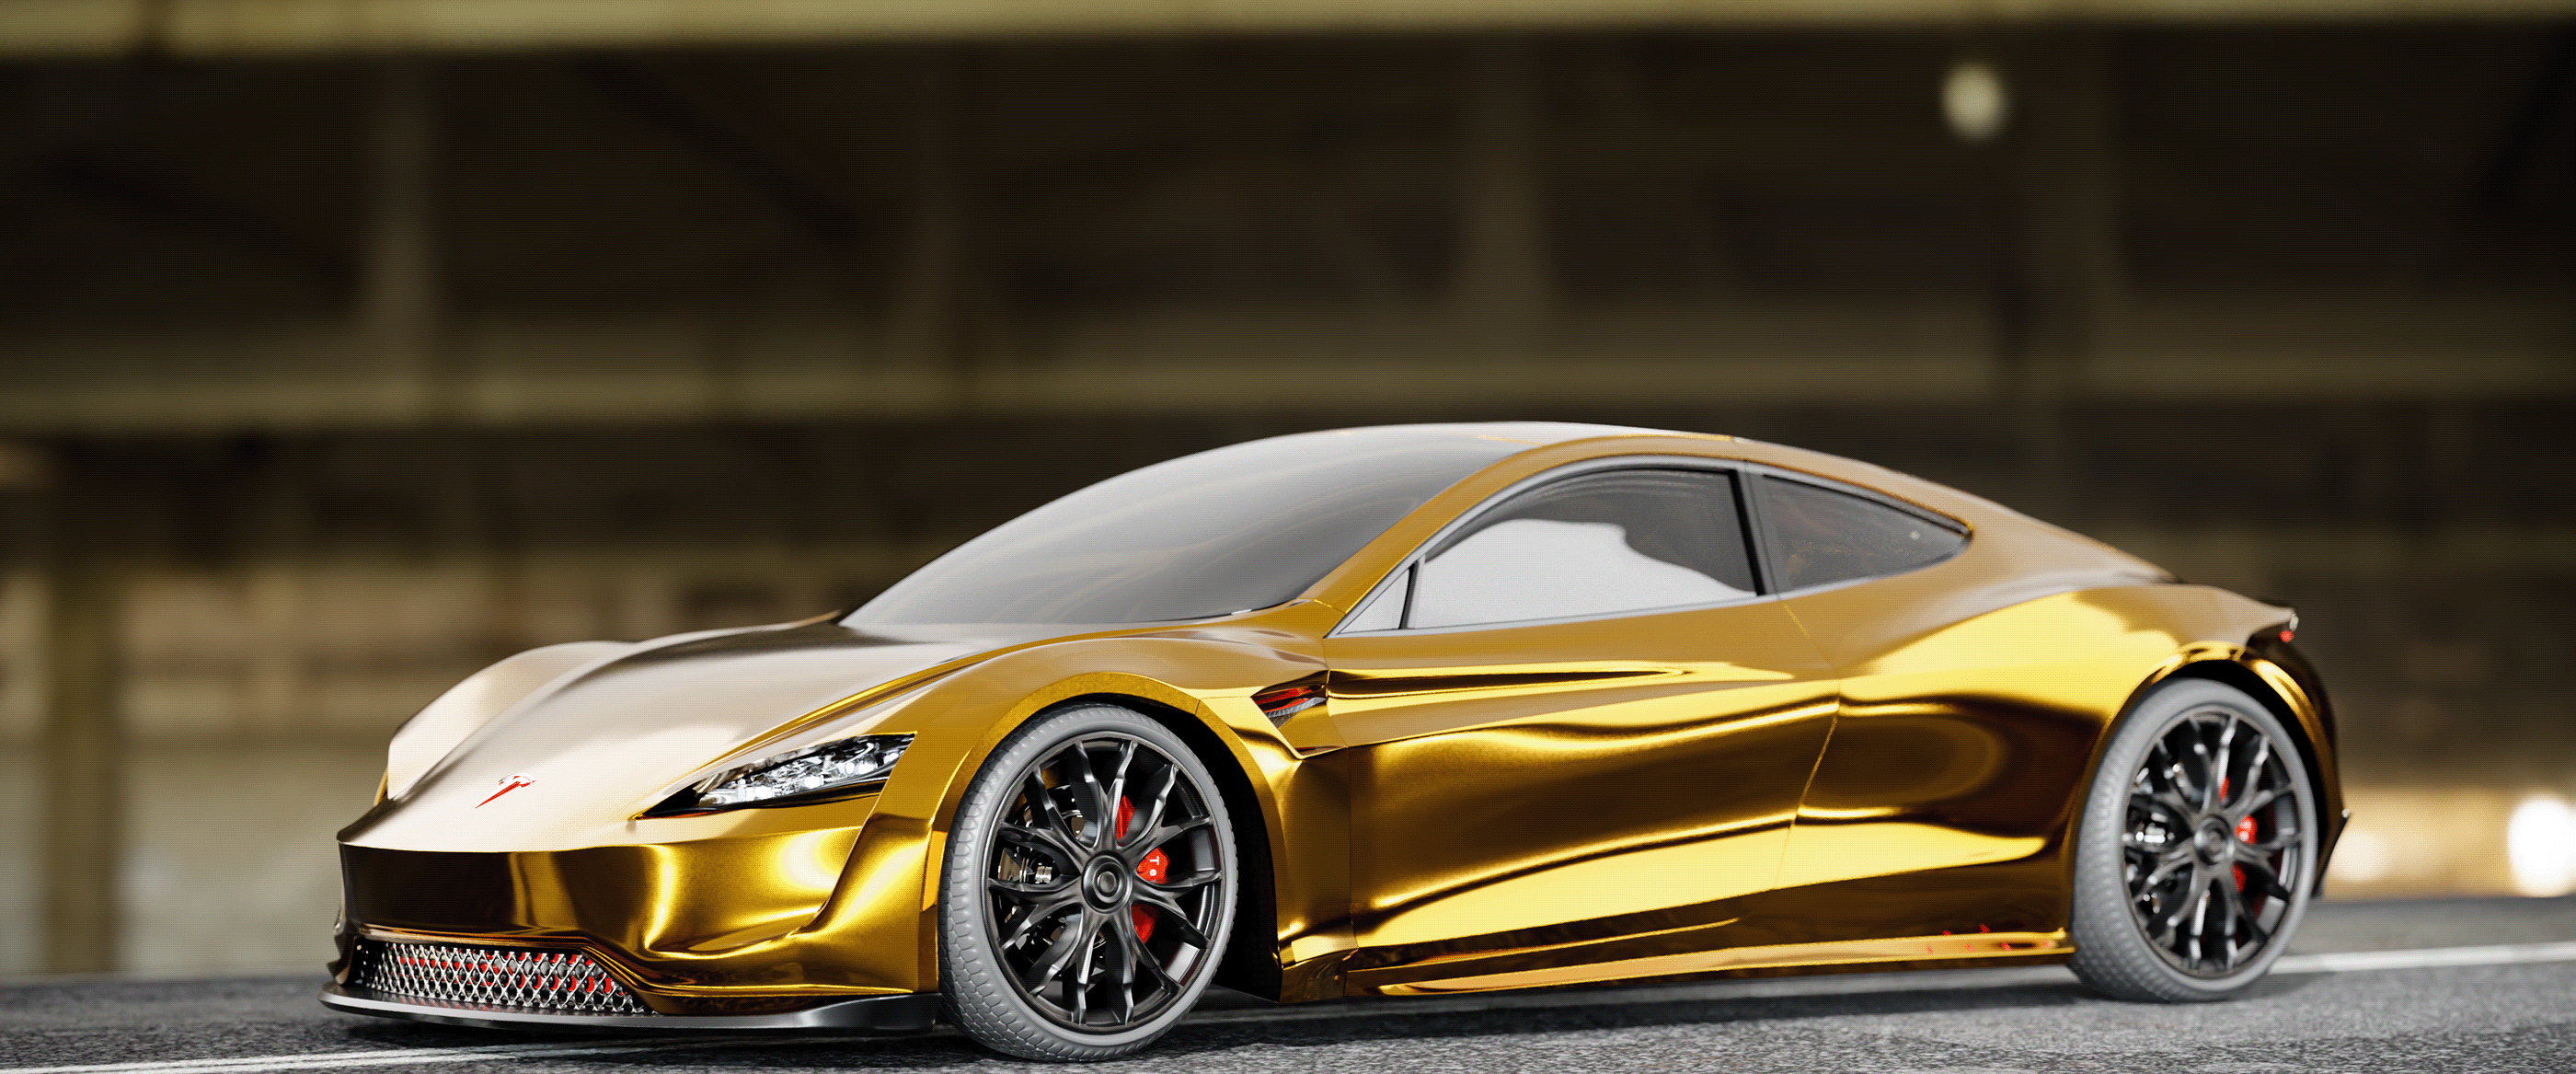 Tesla Roadster 2 0 Gets Rendered In Gold For A Sheik S Pleasure Autoevolution